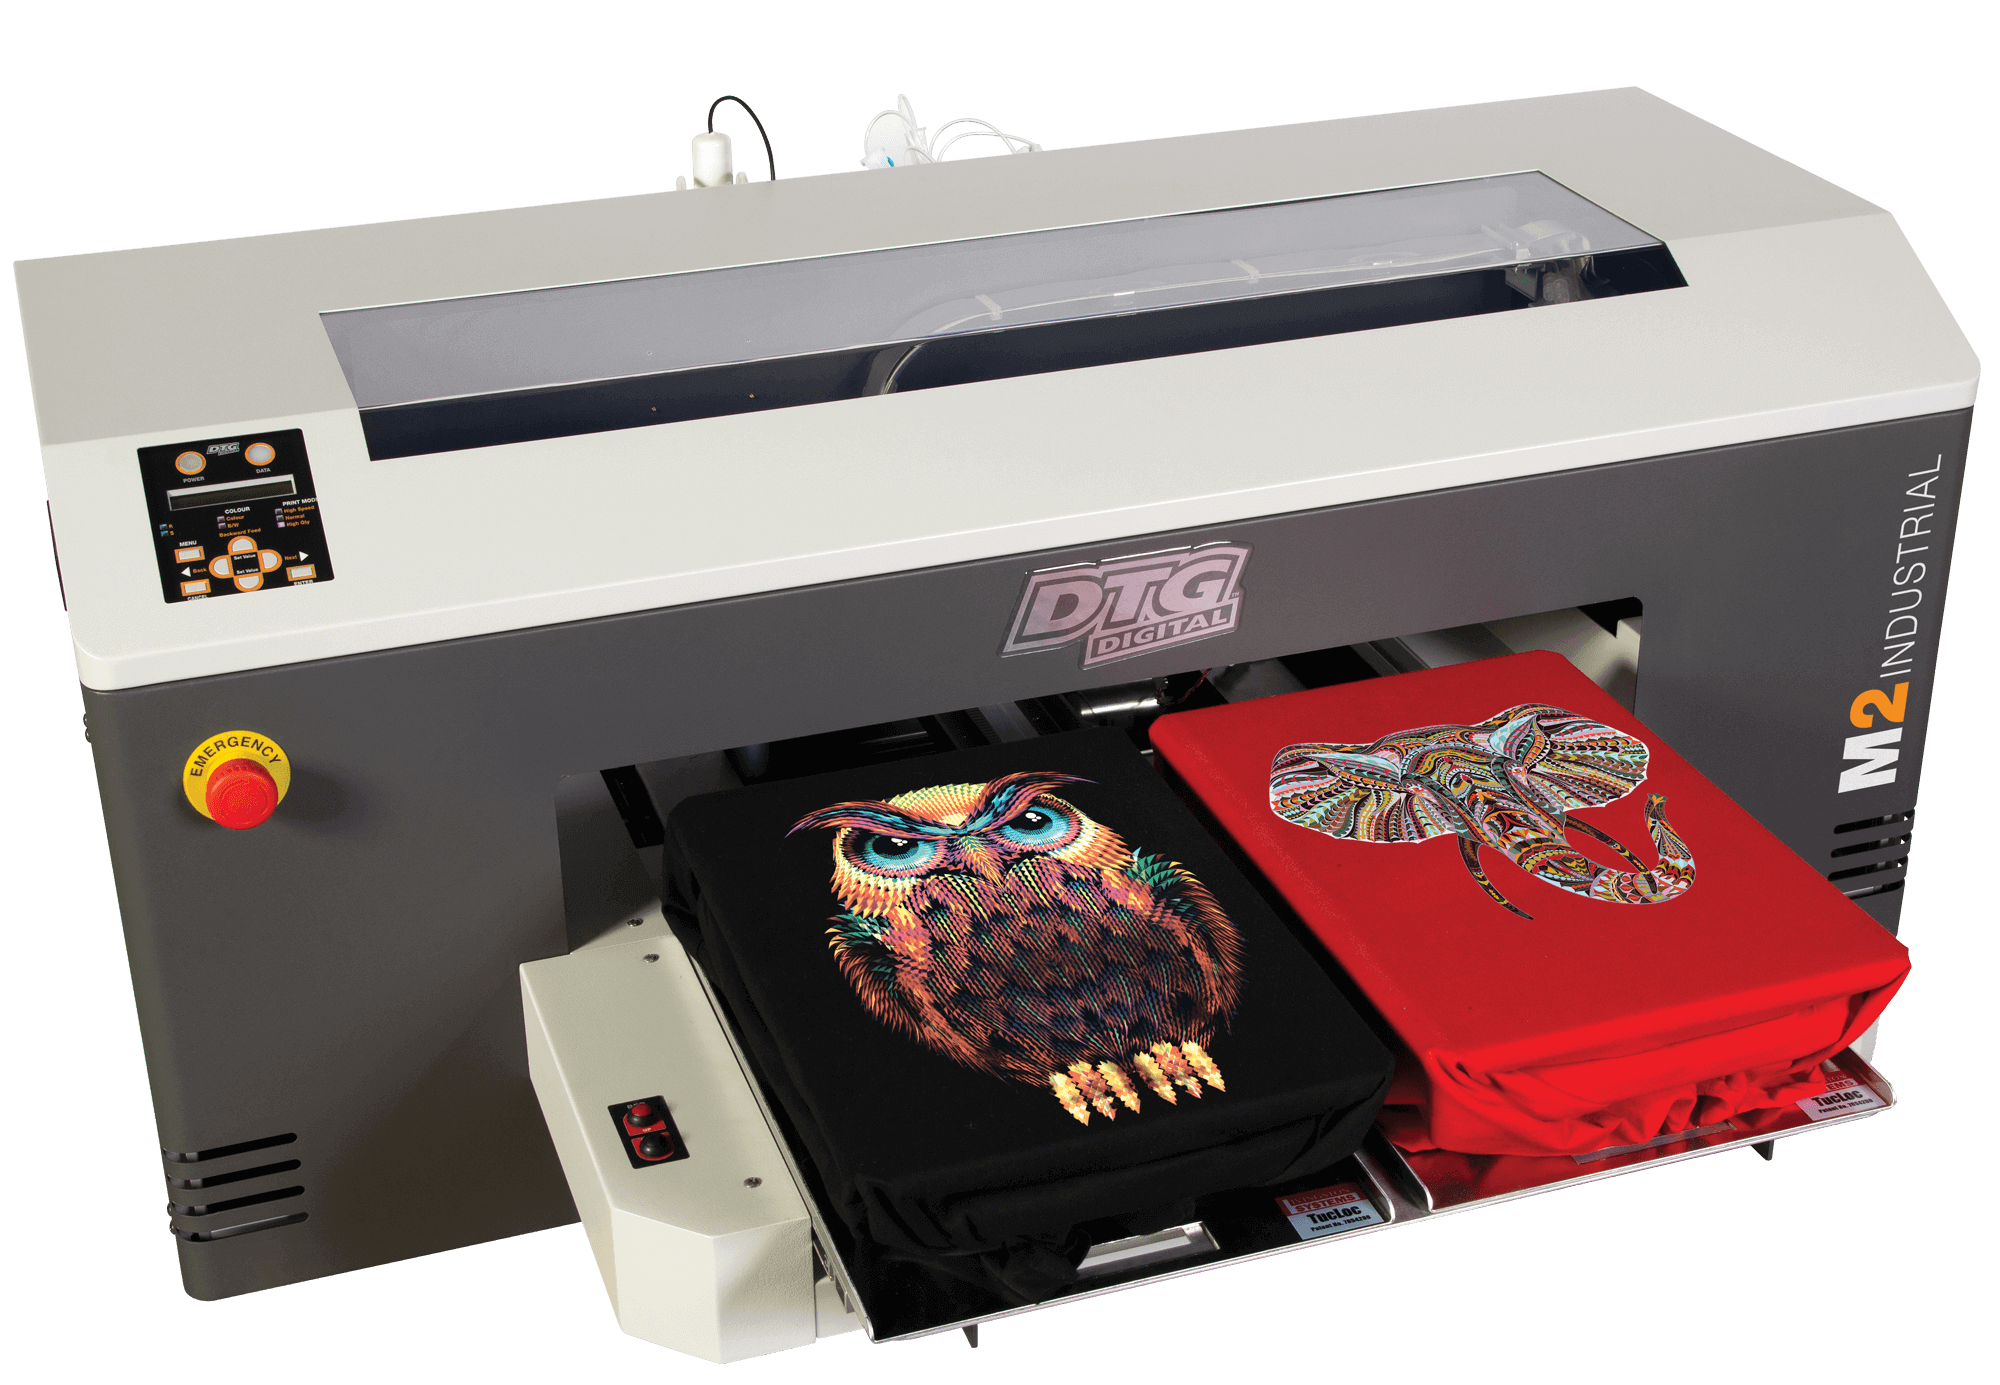 8fed2526 Cotton T-shirt Printing machine in Delhi india | DTG Printer price in Delhi  india